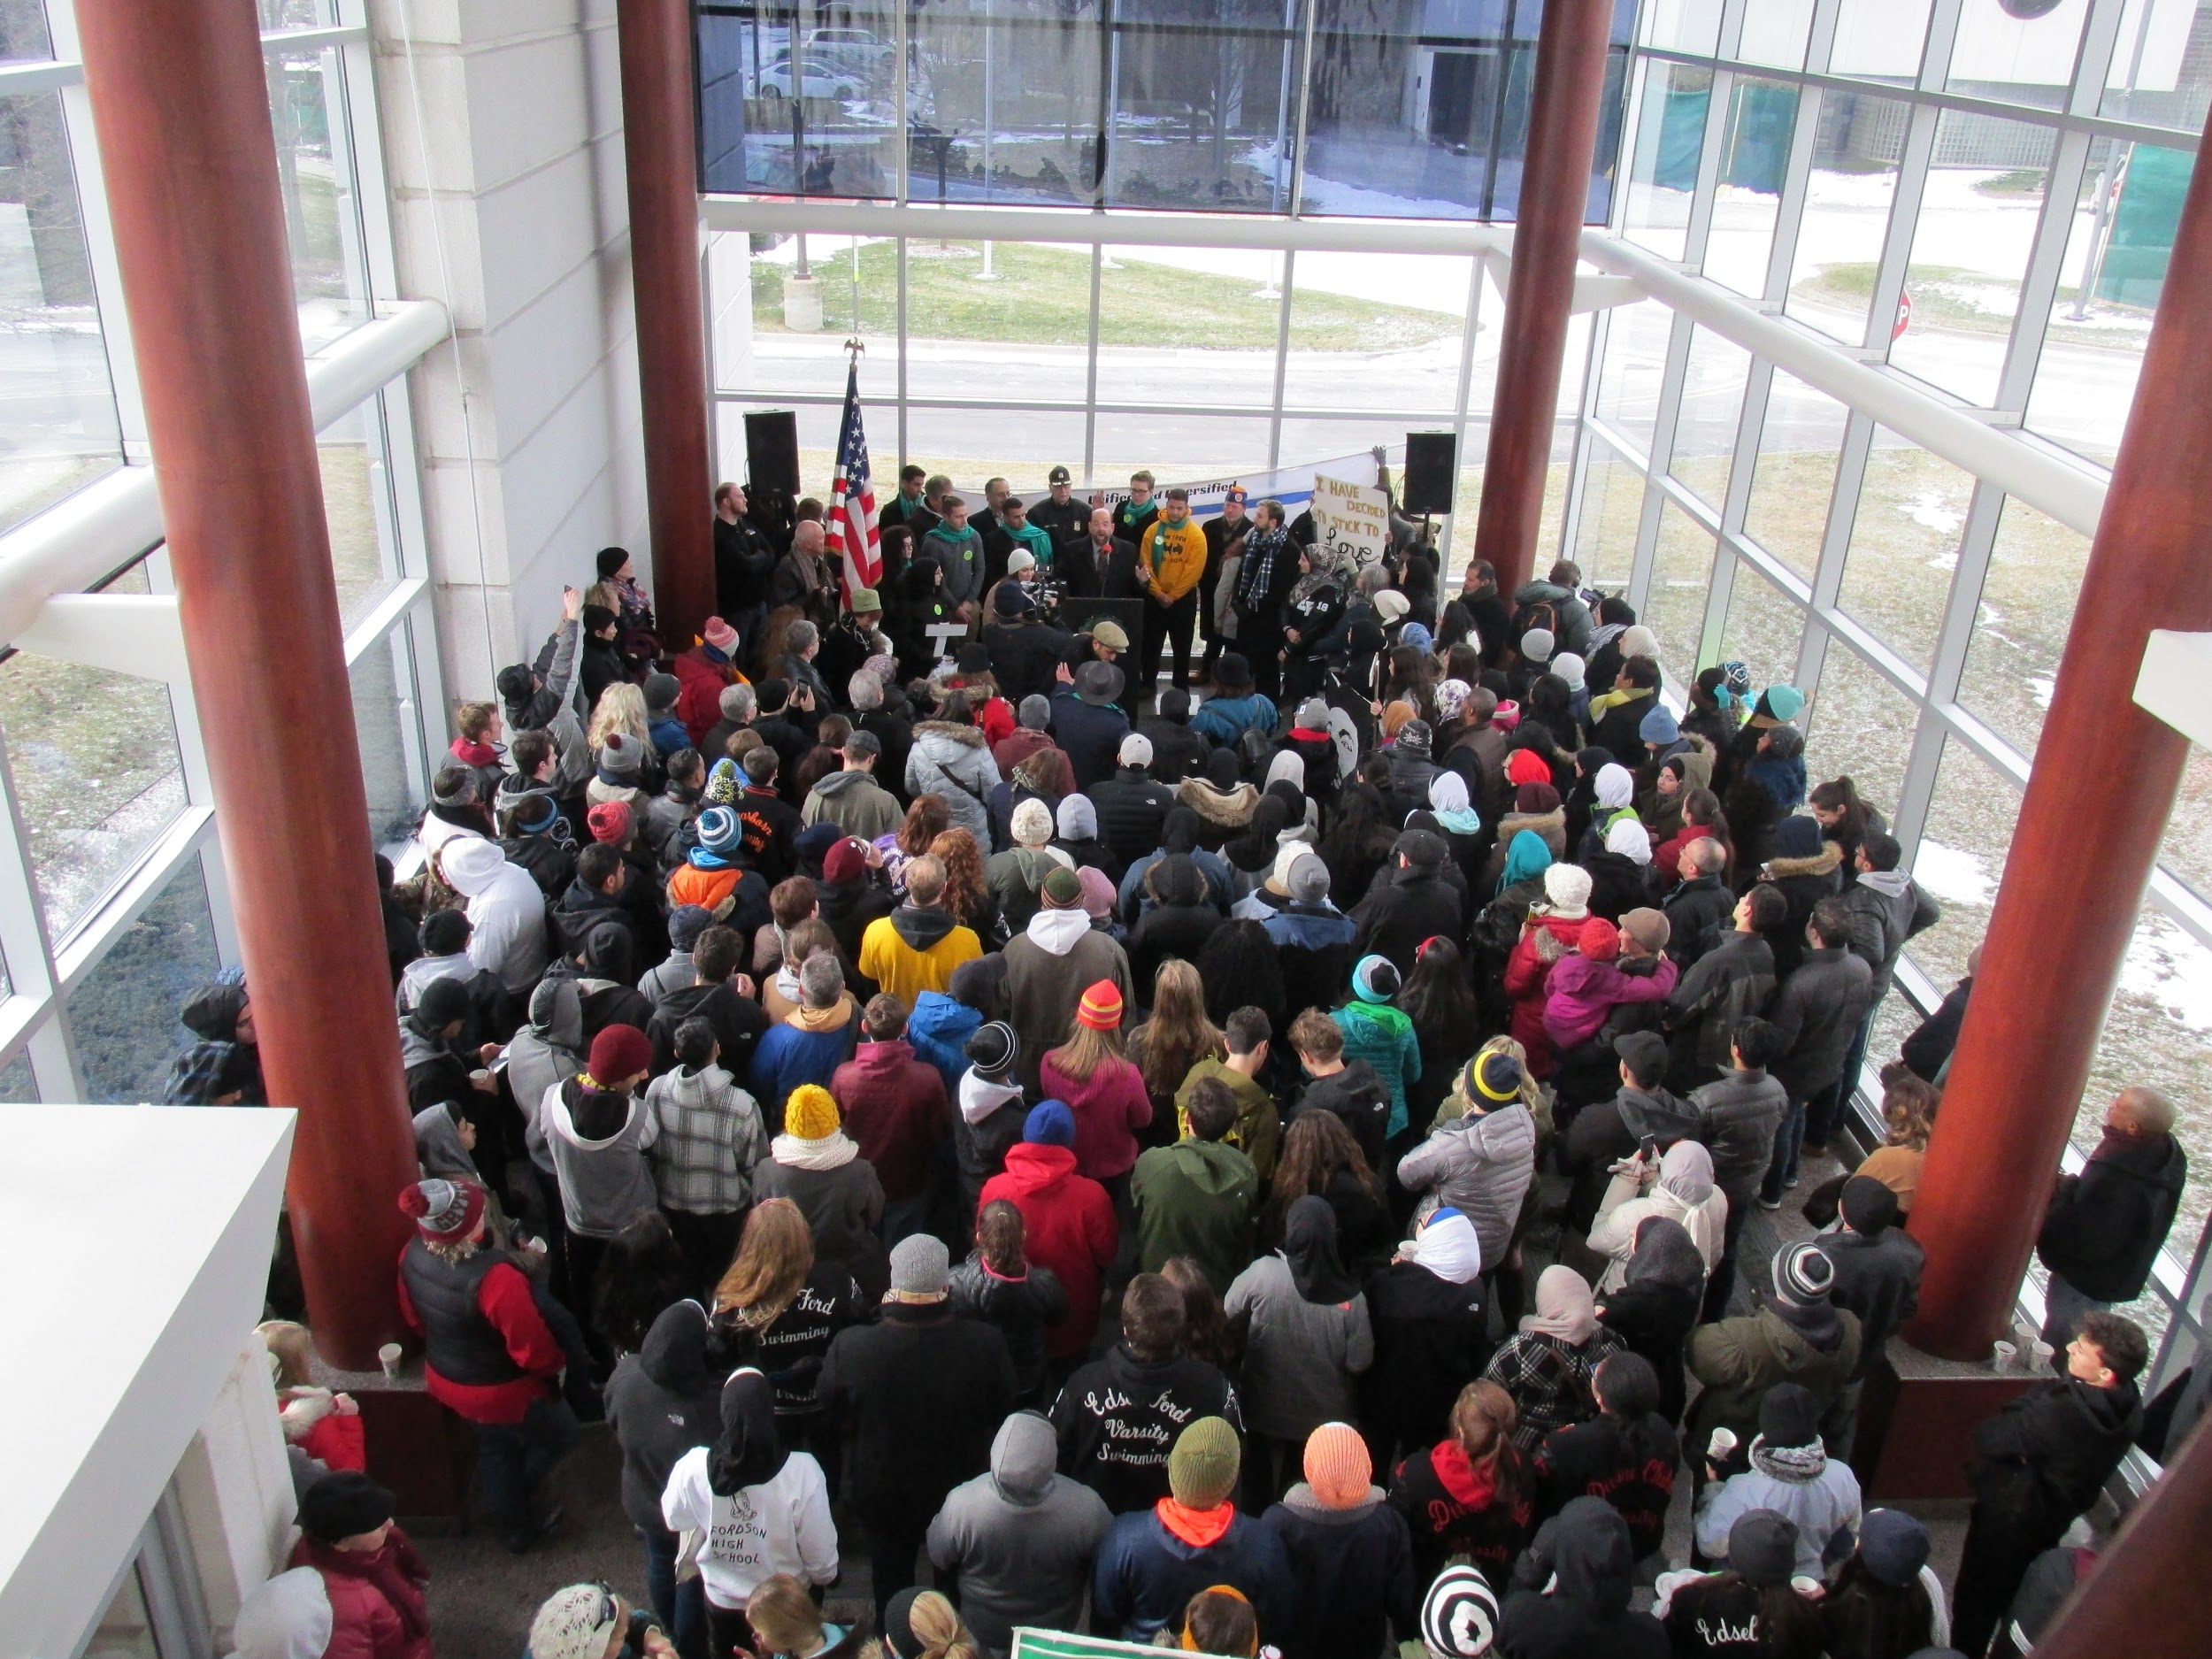 A top down view of roughly 100 people gathered in a lobby space. They stand in front of a podium where several people are standing.